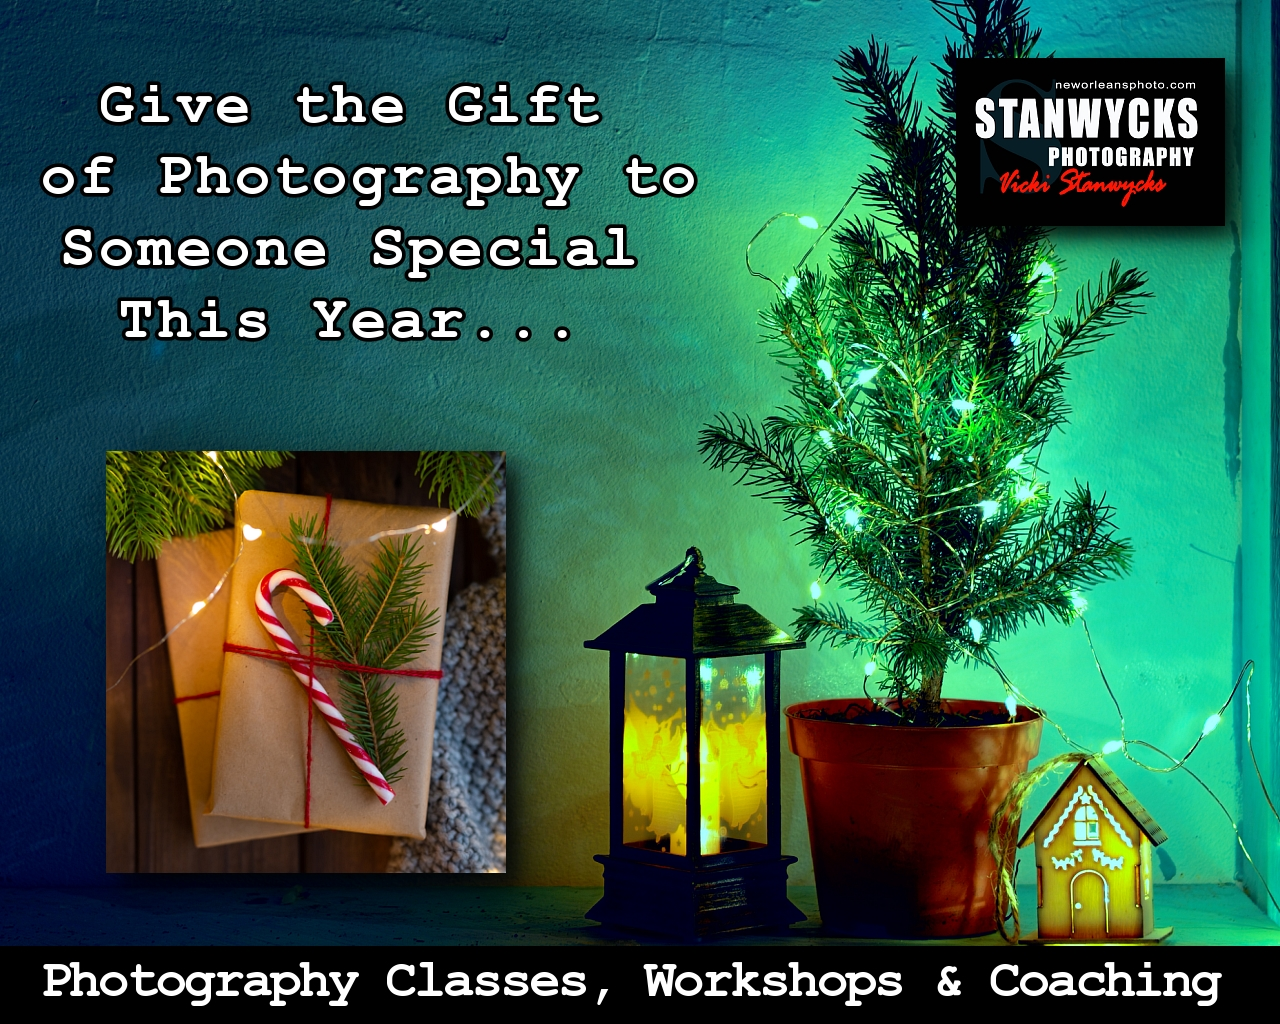 Holiday Web Pages 056 (Sheet 56)